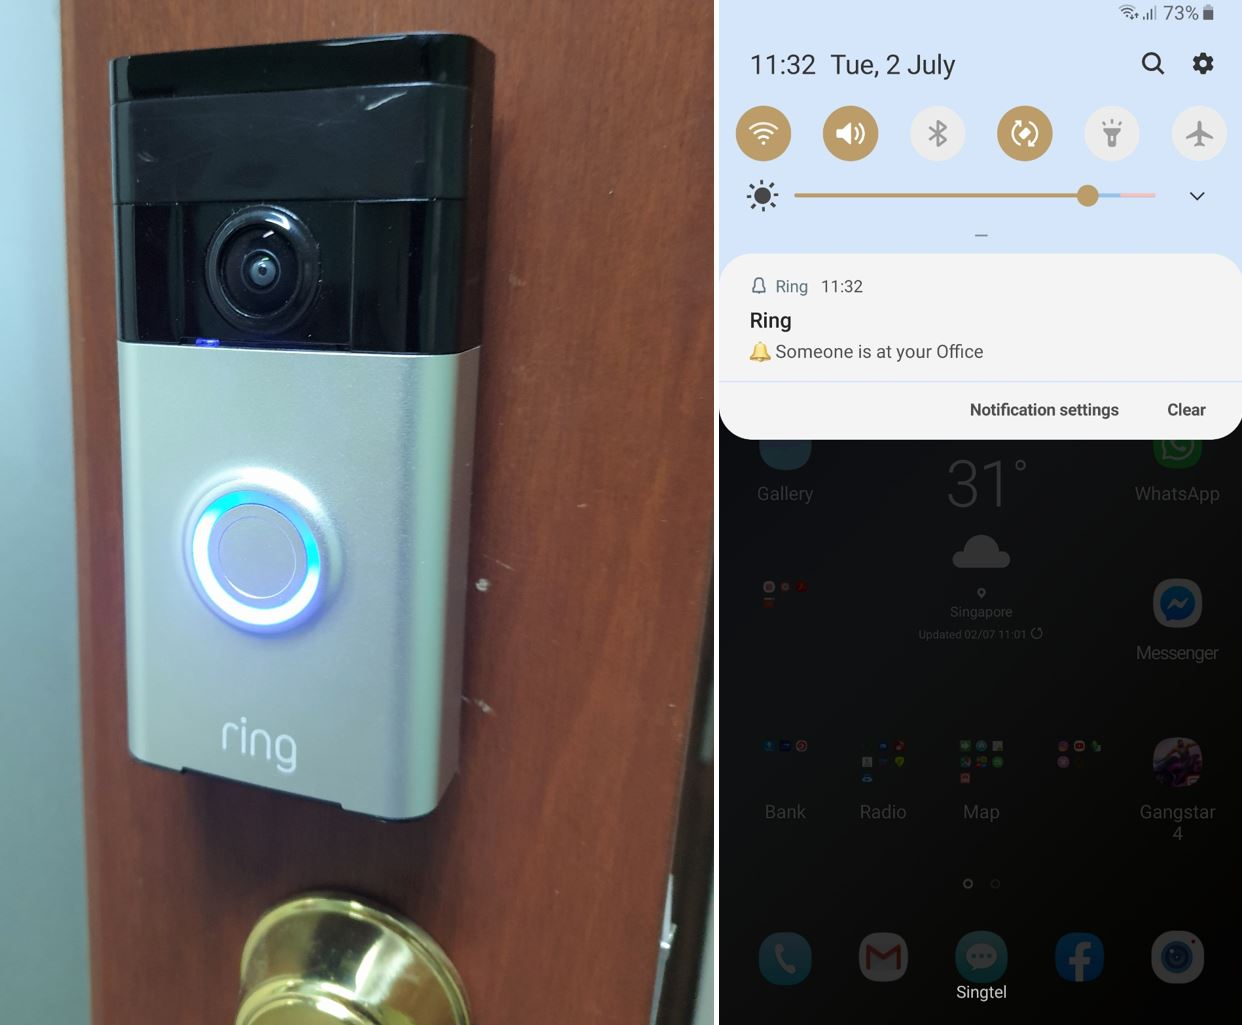 Doorbell linked to smartphone, screenshot of notification that doorbell is ringing and someone is at the office.